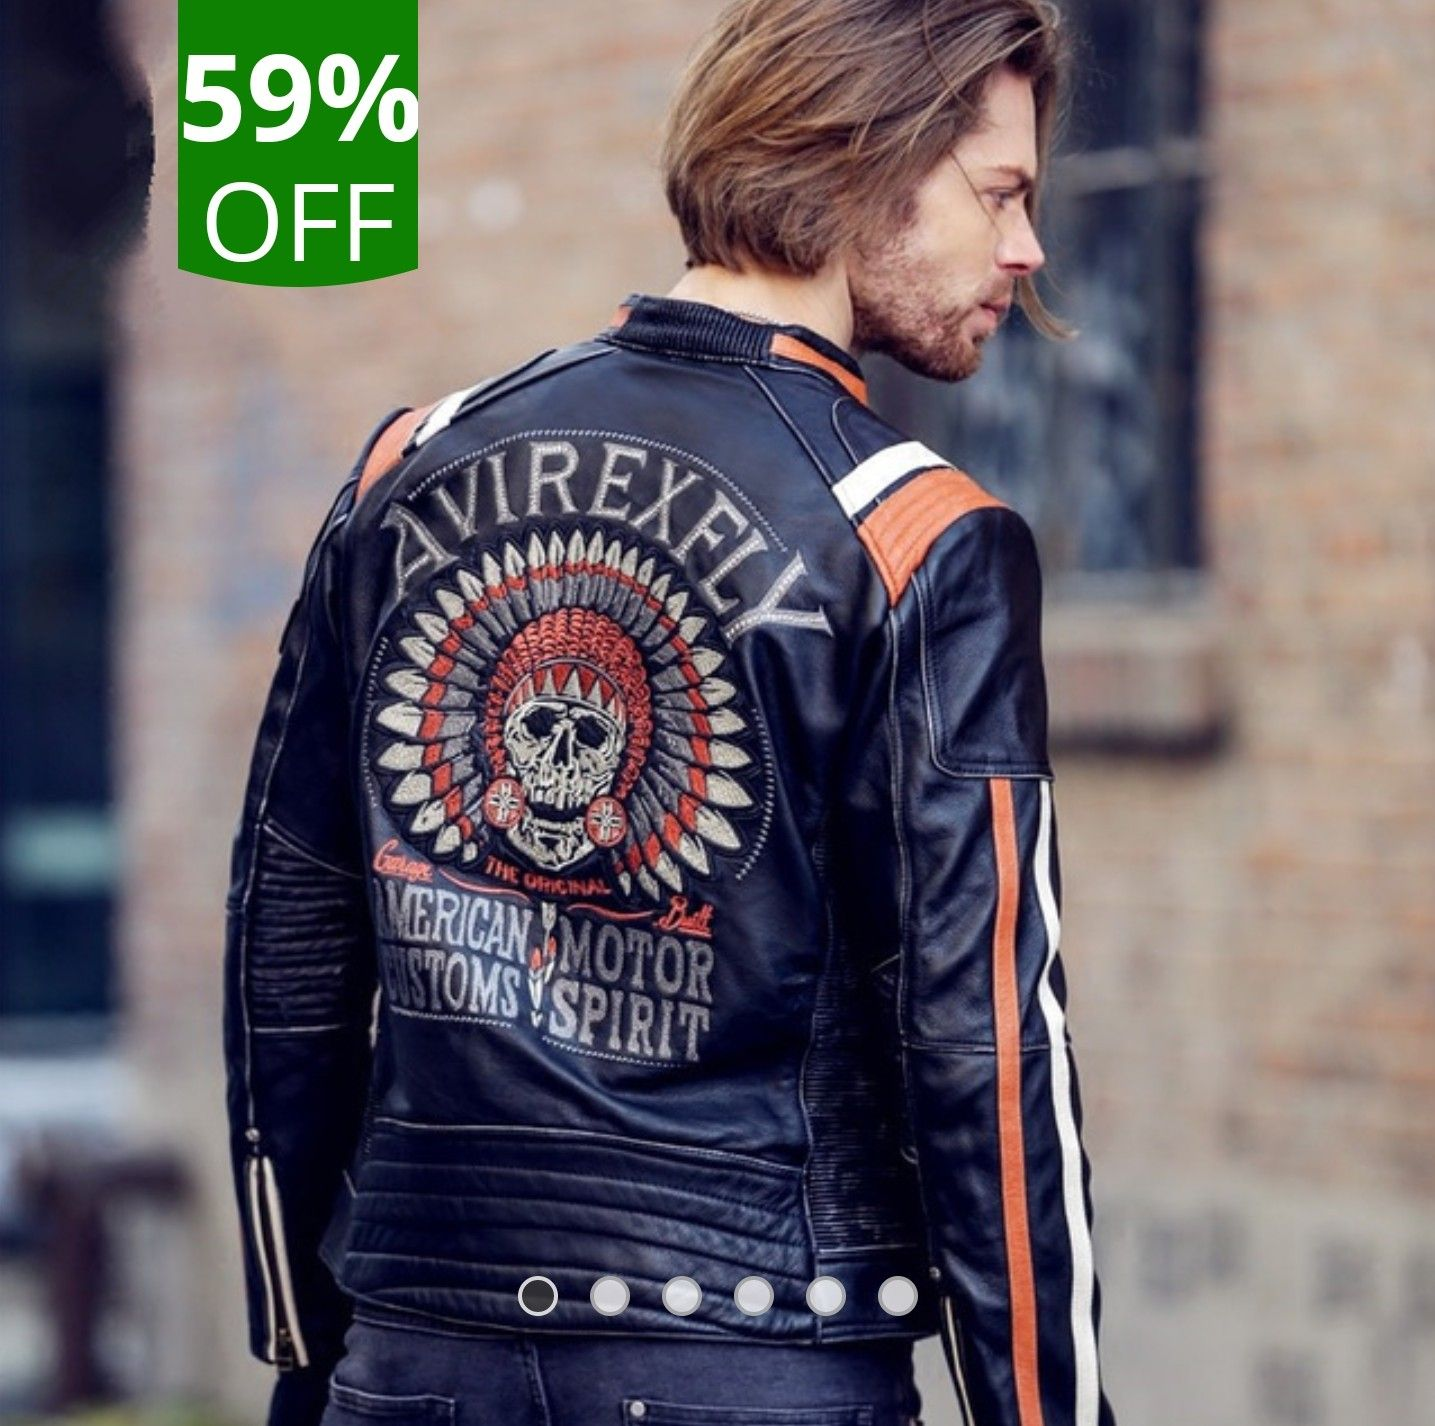 Pin By Michael Riley On Style Leather Jacket Leather Jacket Women Fashion Leather Jacket Outfit Men [ 1426 x 1435 Pixel ]